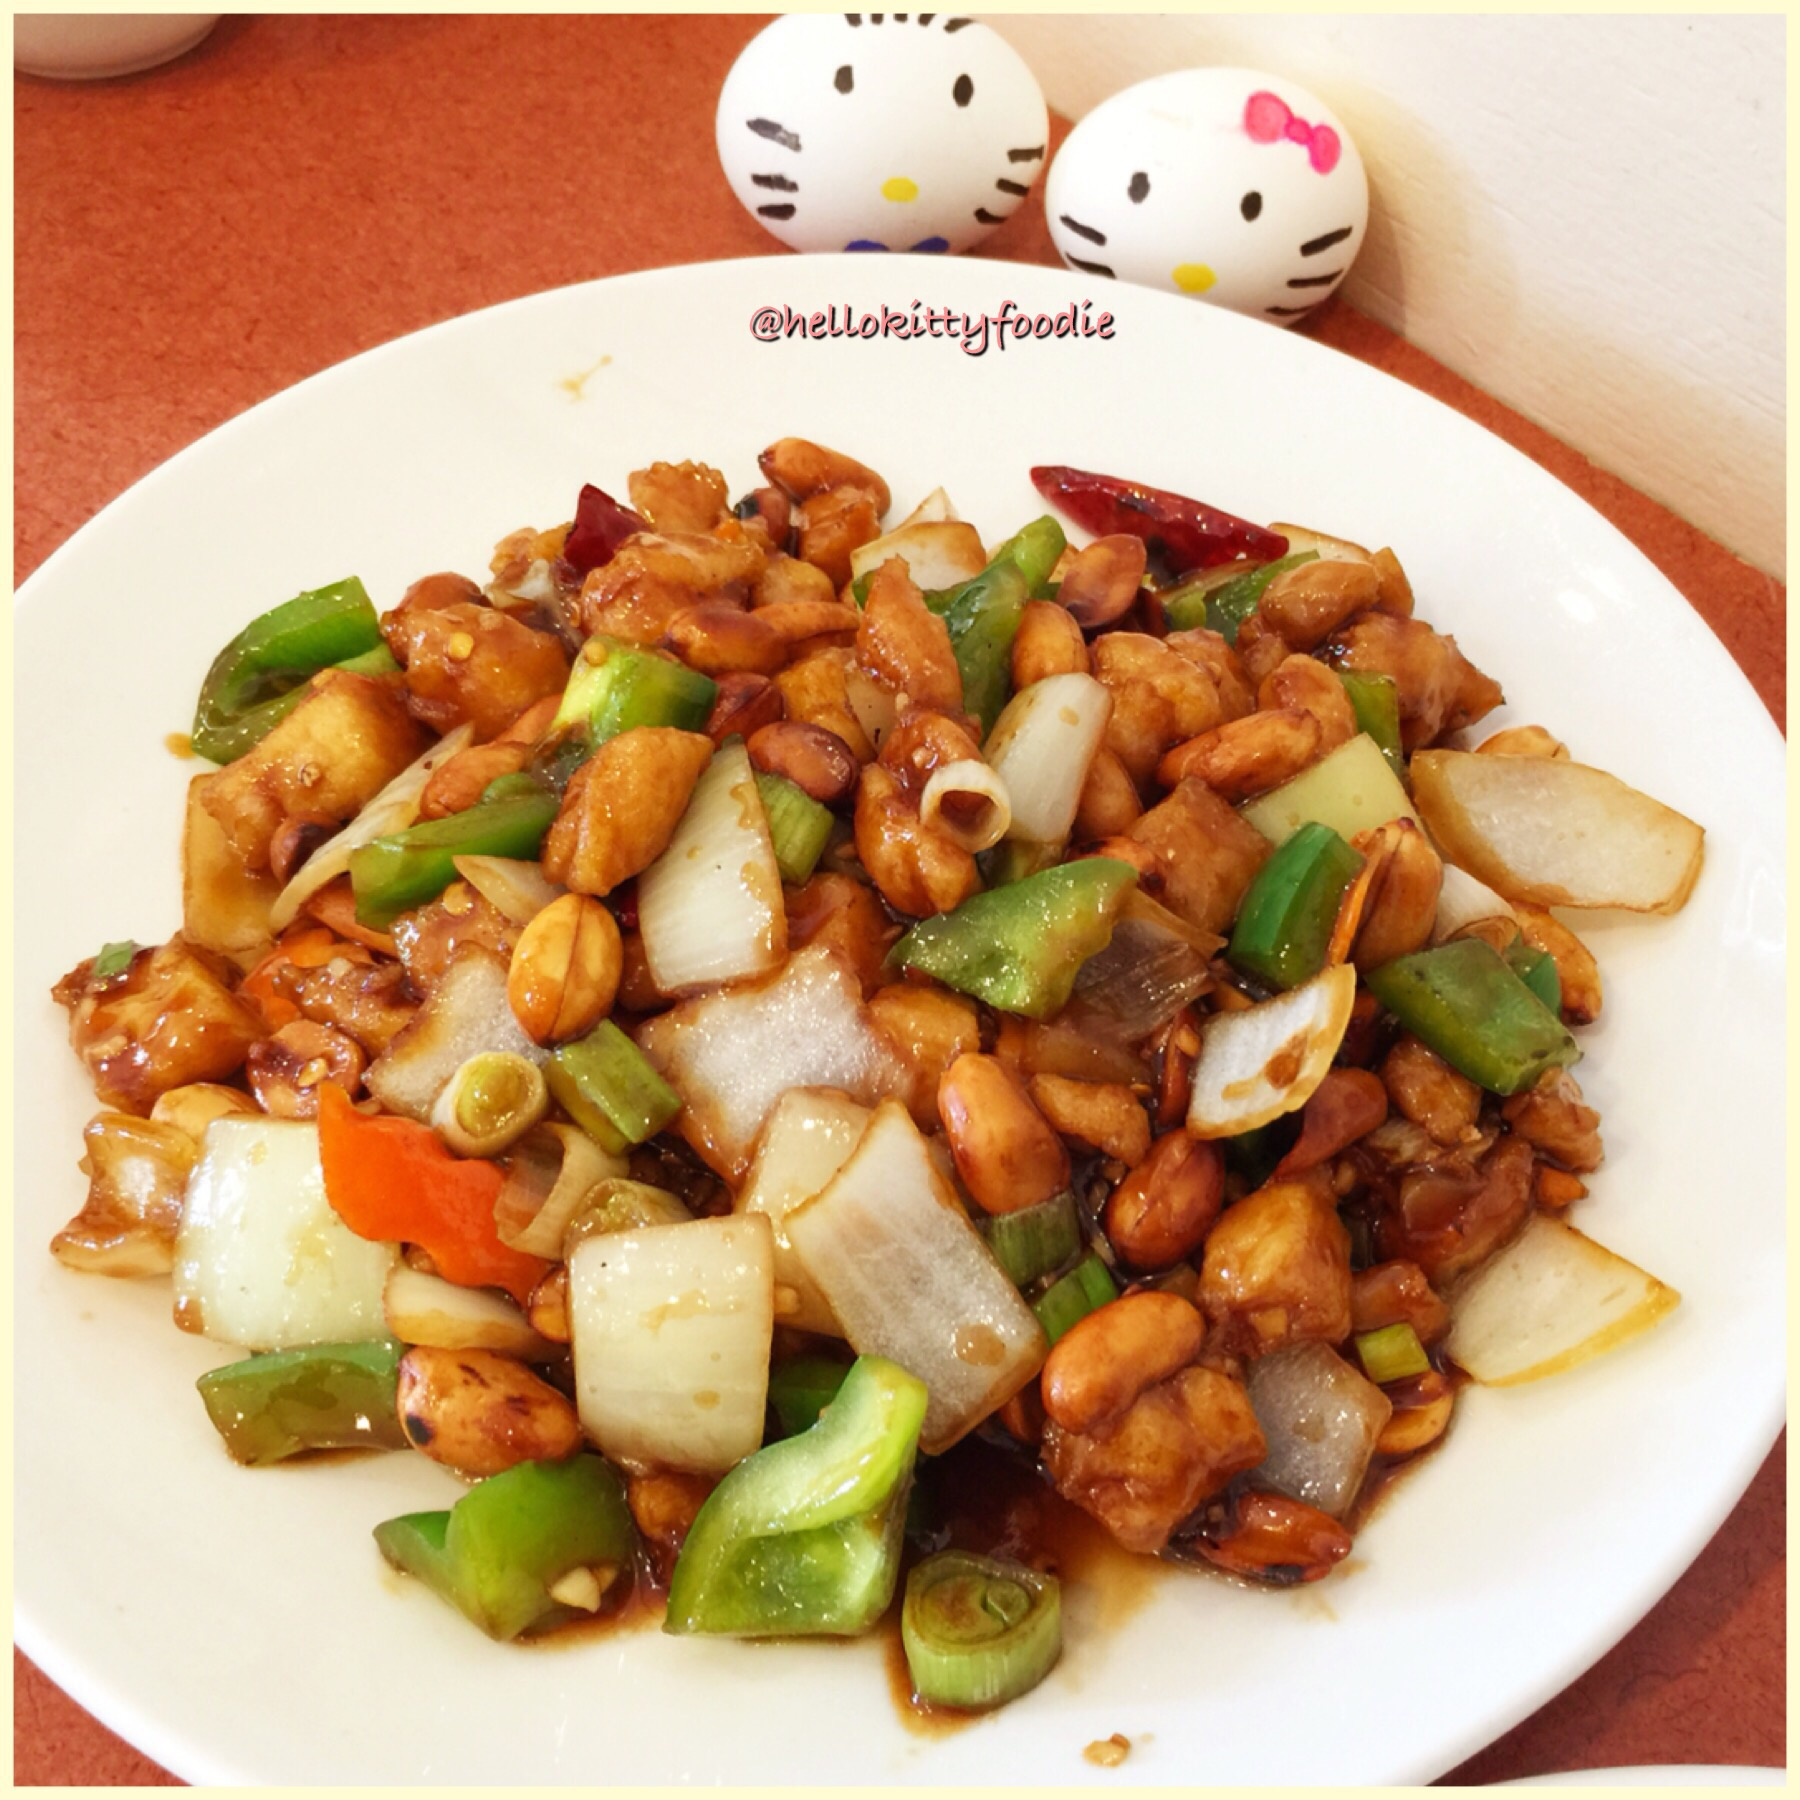 Chinese food hello kitty foodie for Cuisine hello kitty